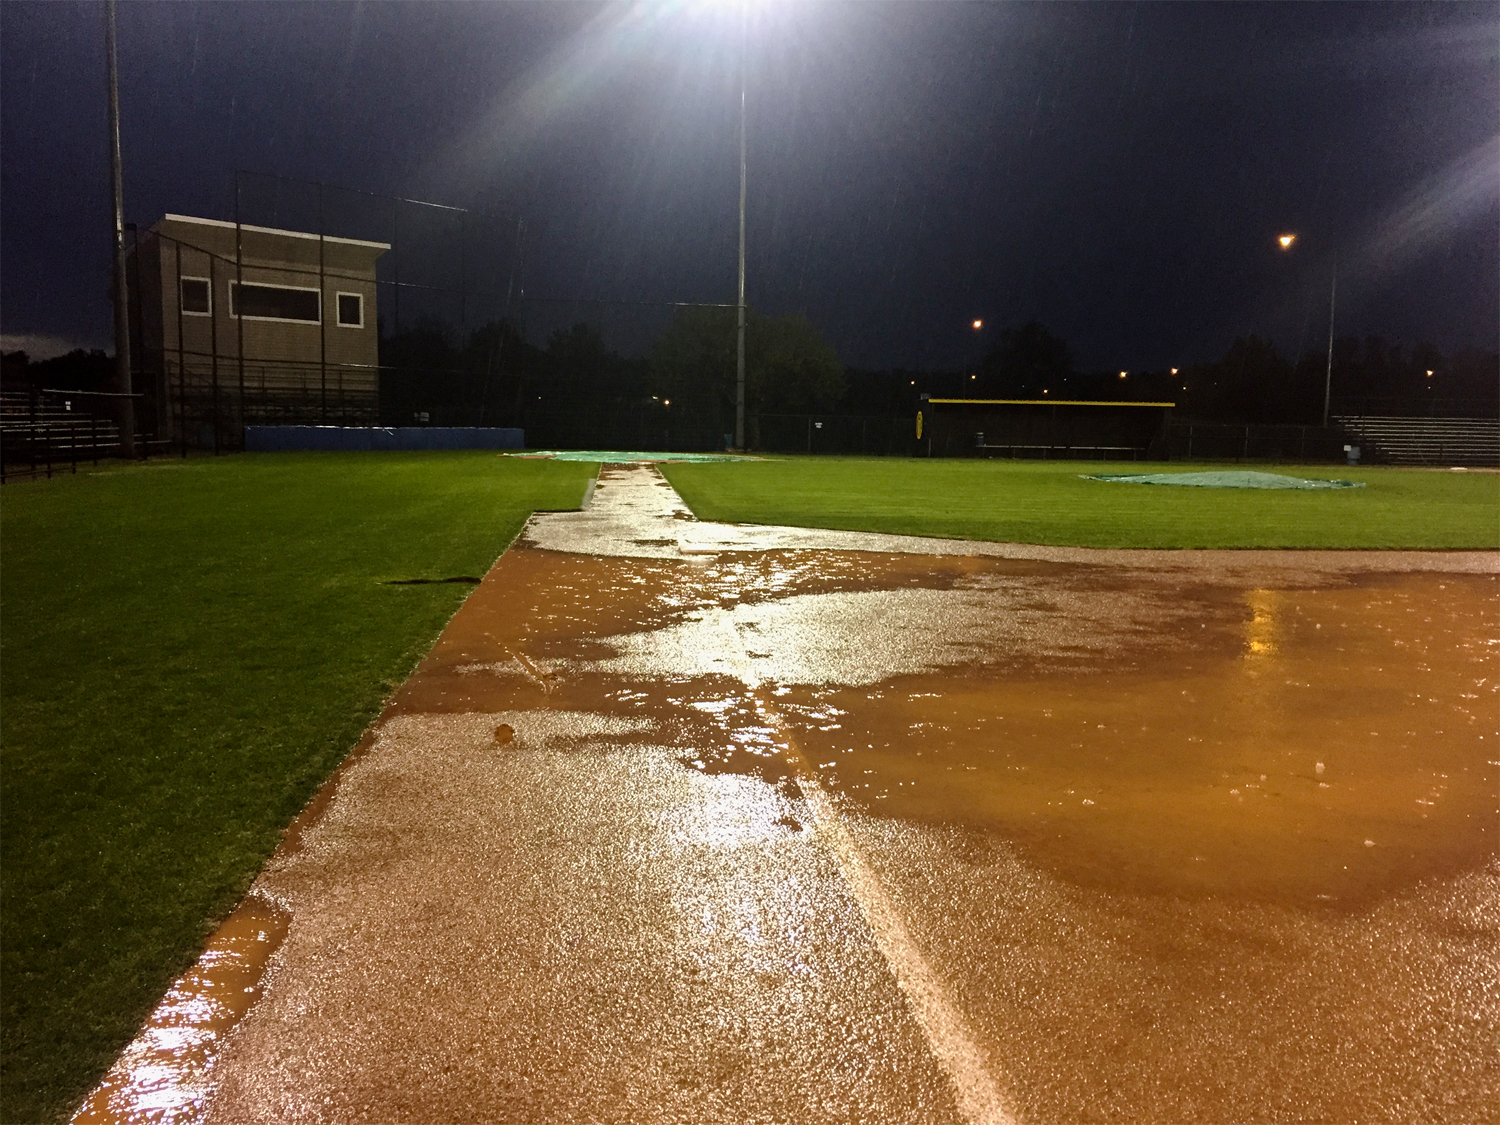 Rained out at Palmer Field